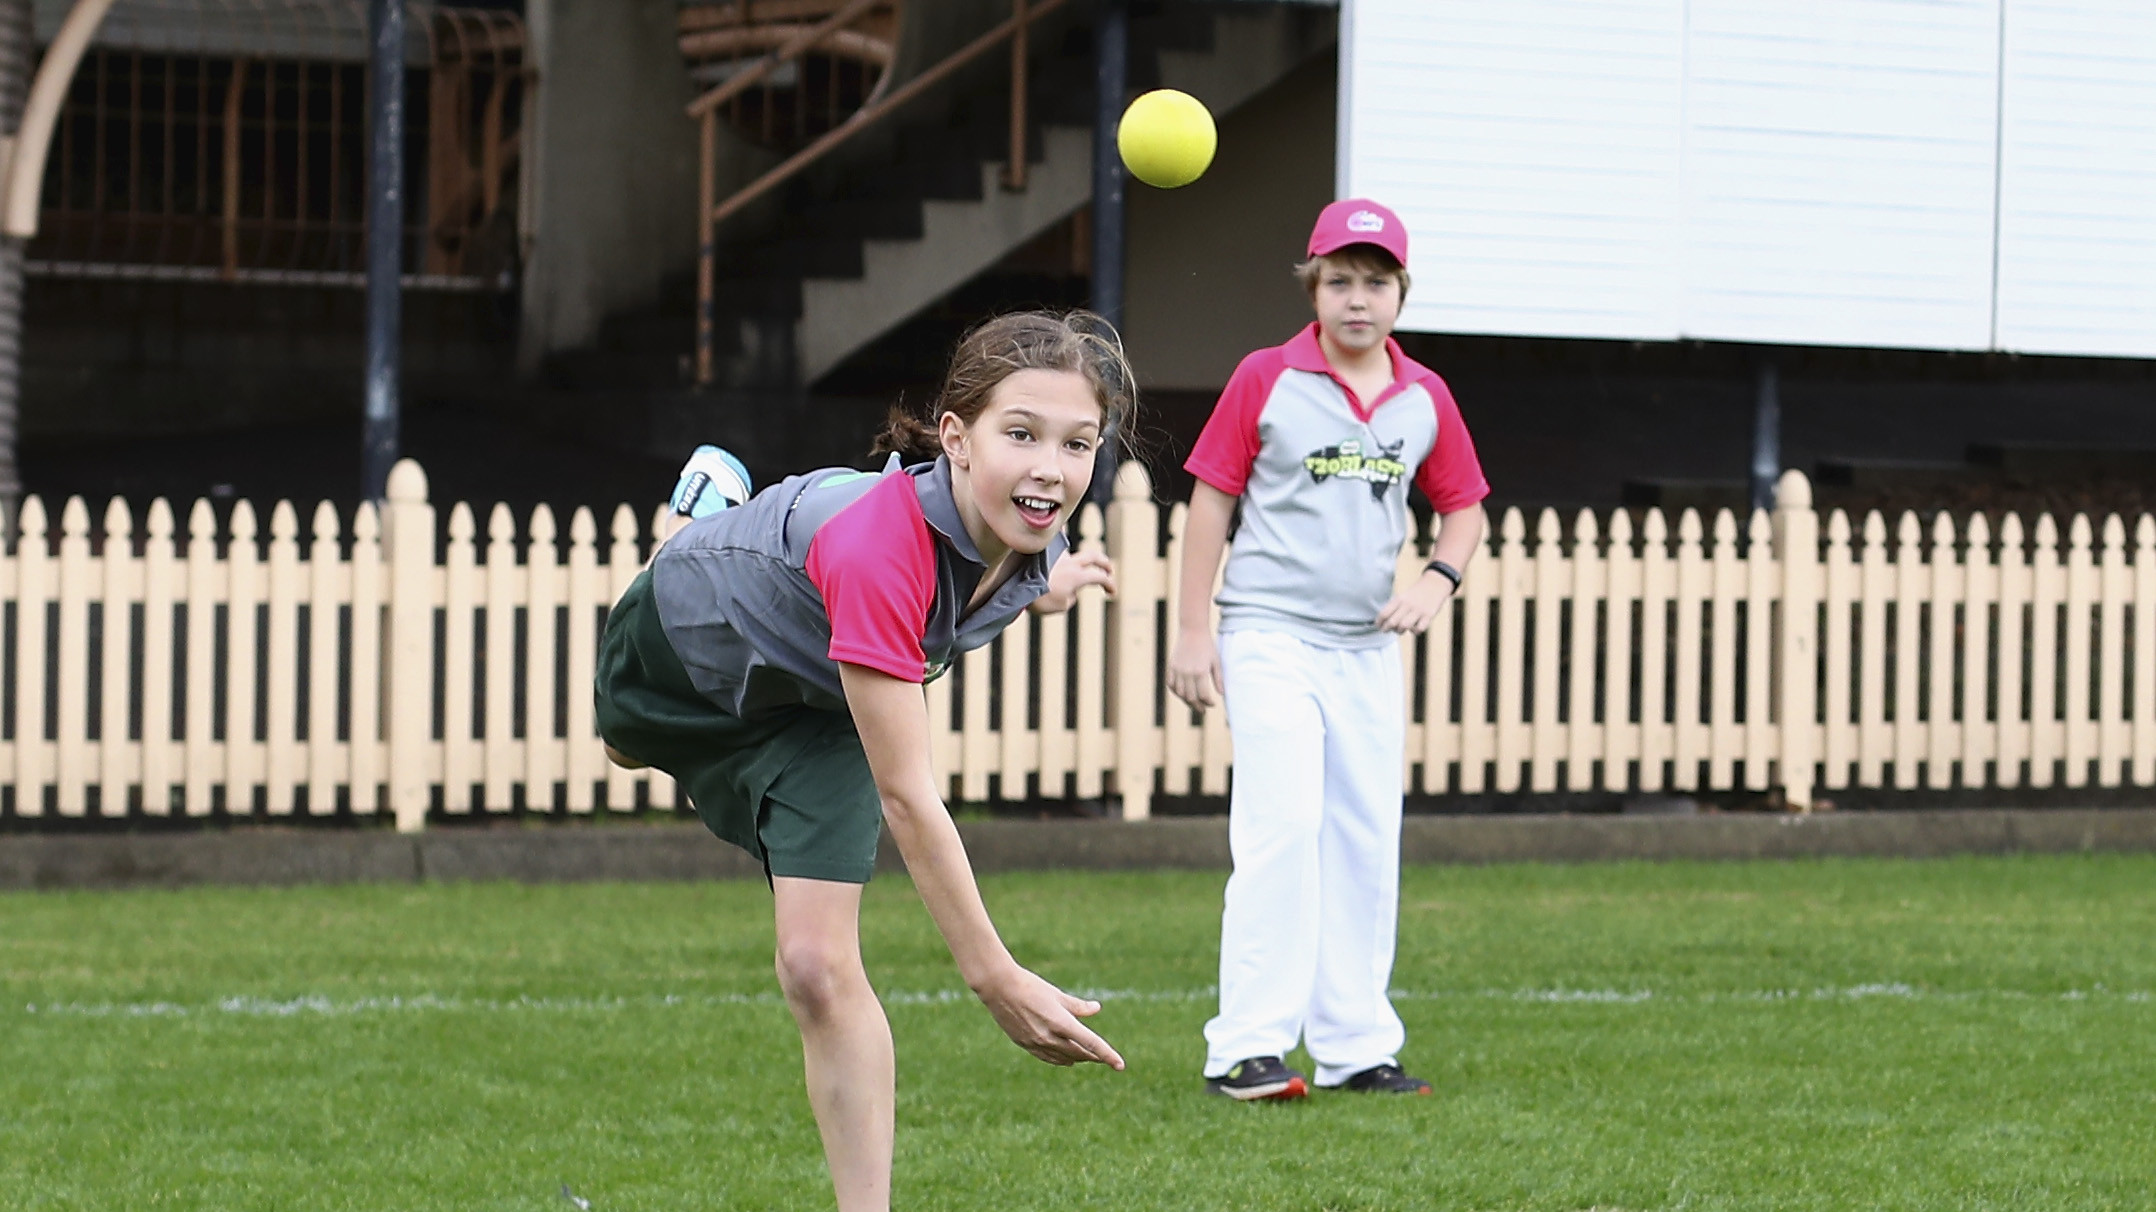 11-year-old cricketer Olivia wins hearts raising important issue with Kookaburra